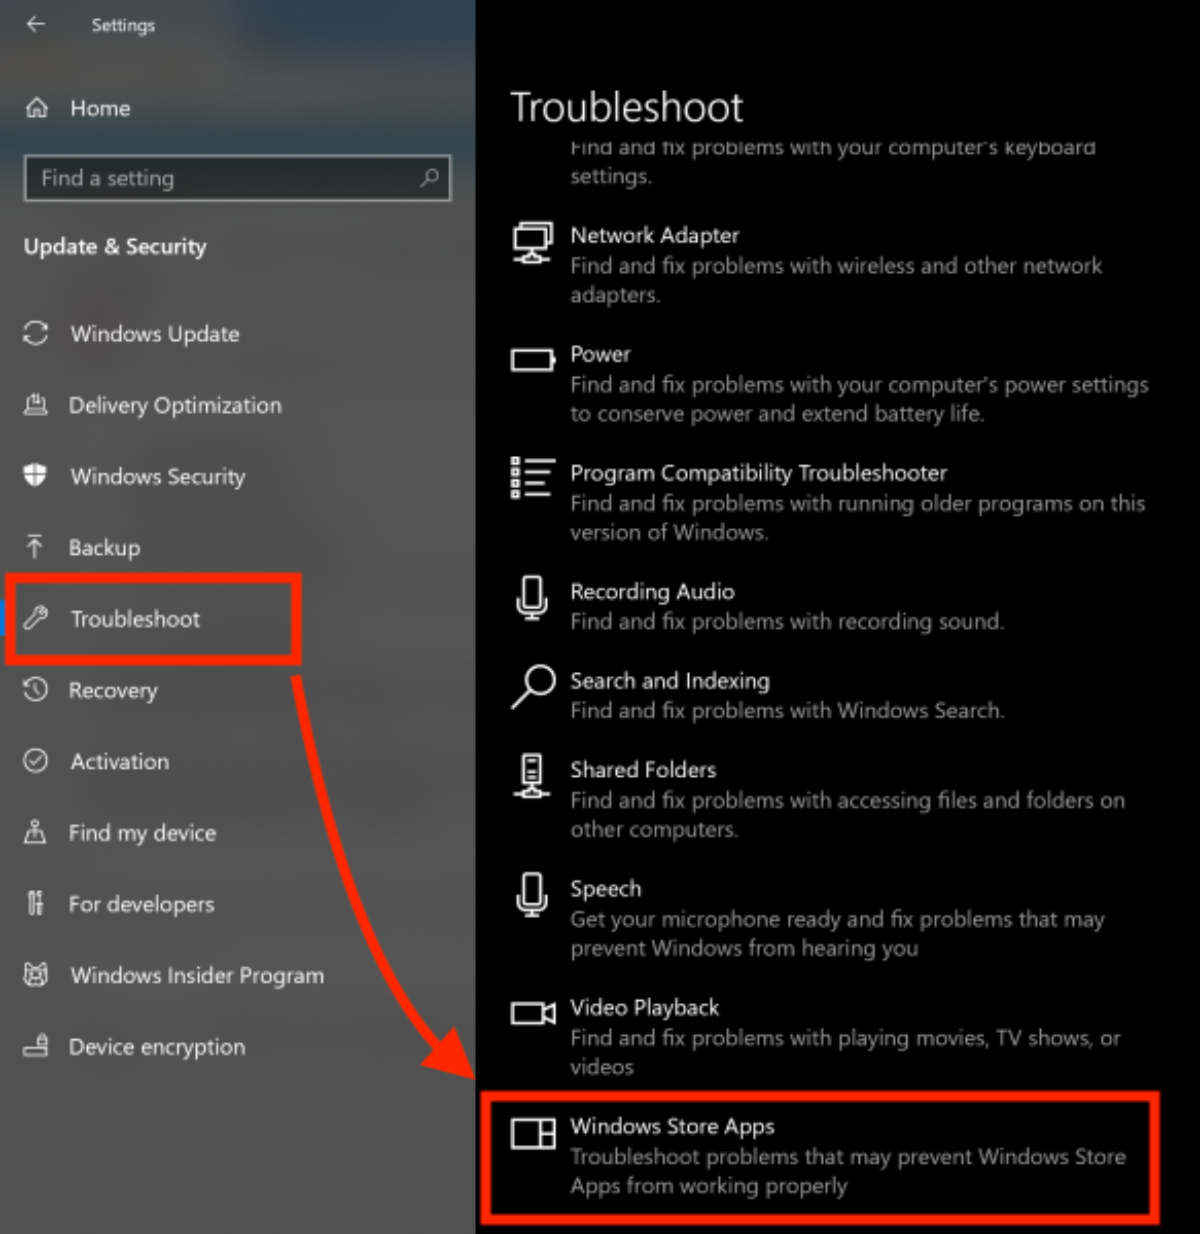 Your Phone App Not Working Or Will Not Open On Windows 10